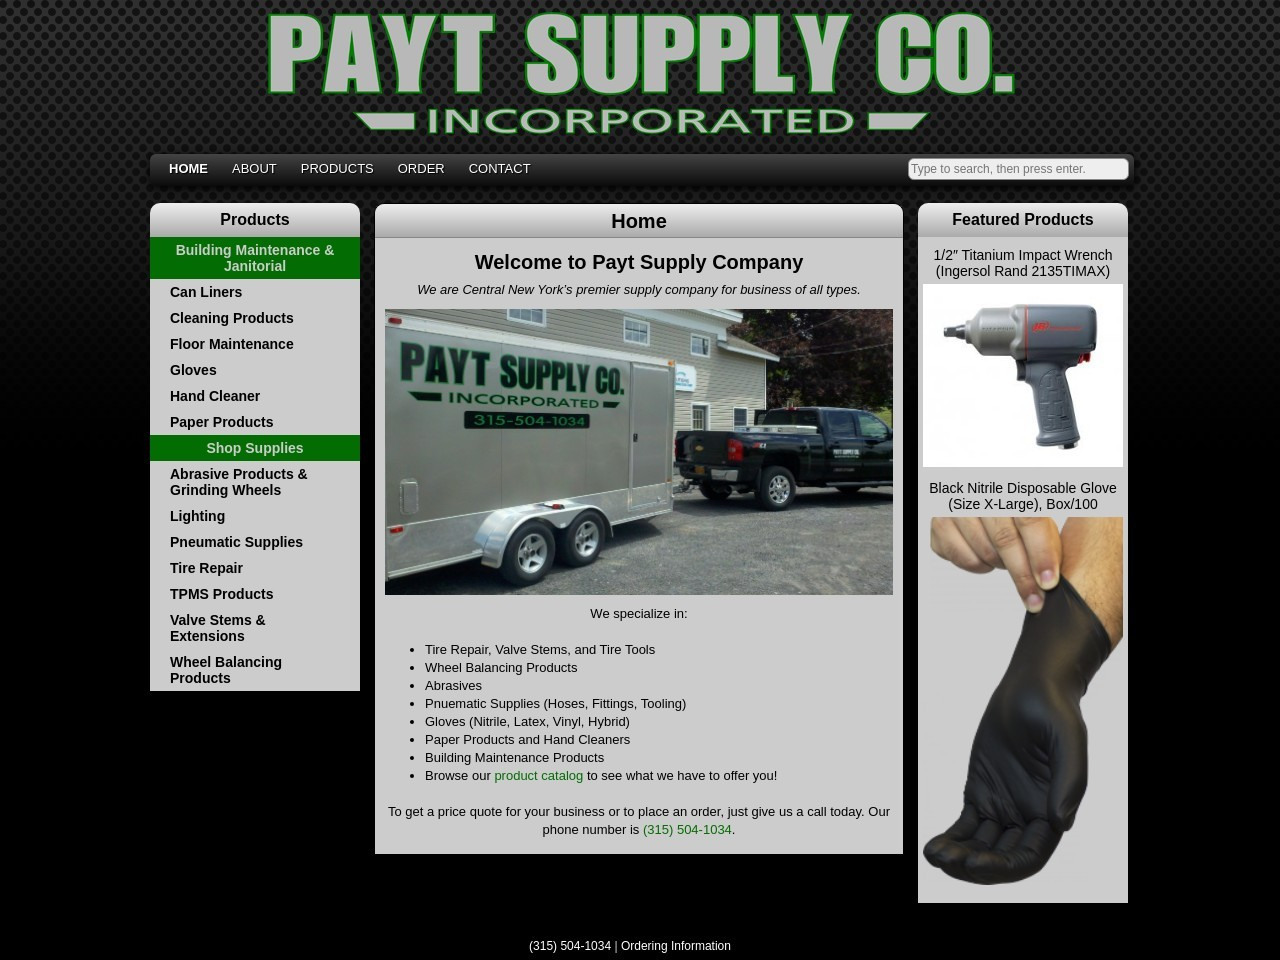 Screenshot of the website Payt Supply Company